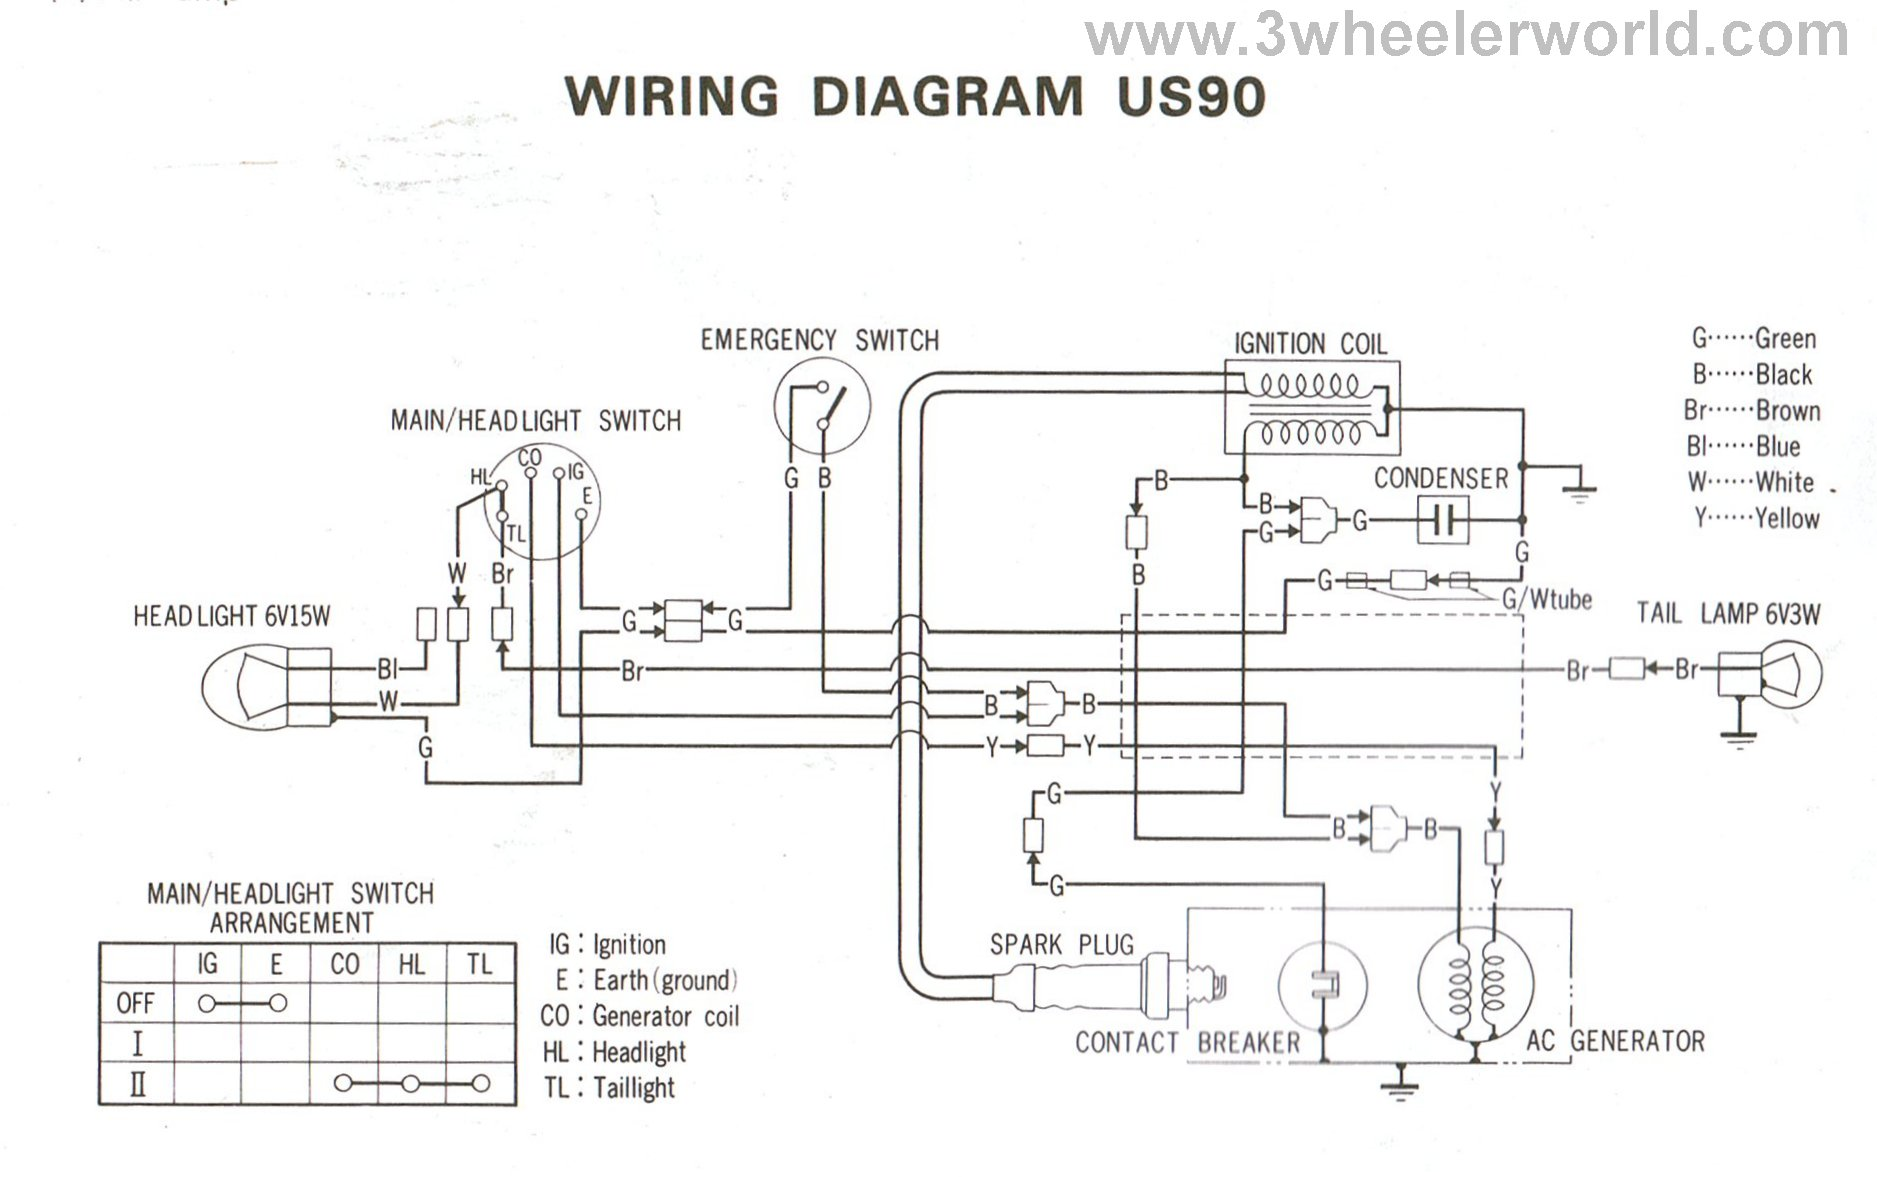 hight resolution of 1978 honda atc 90 wiring archive of automotive wiring diagram 3 wheeler world tech help honda